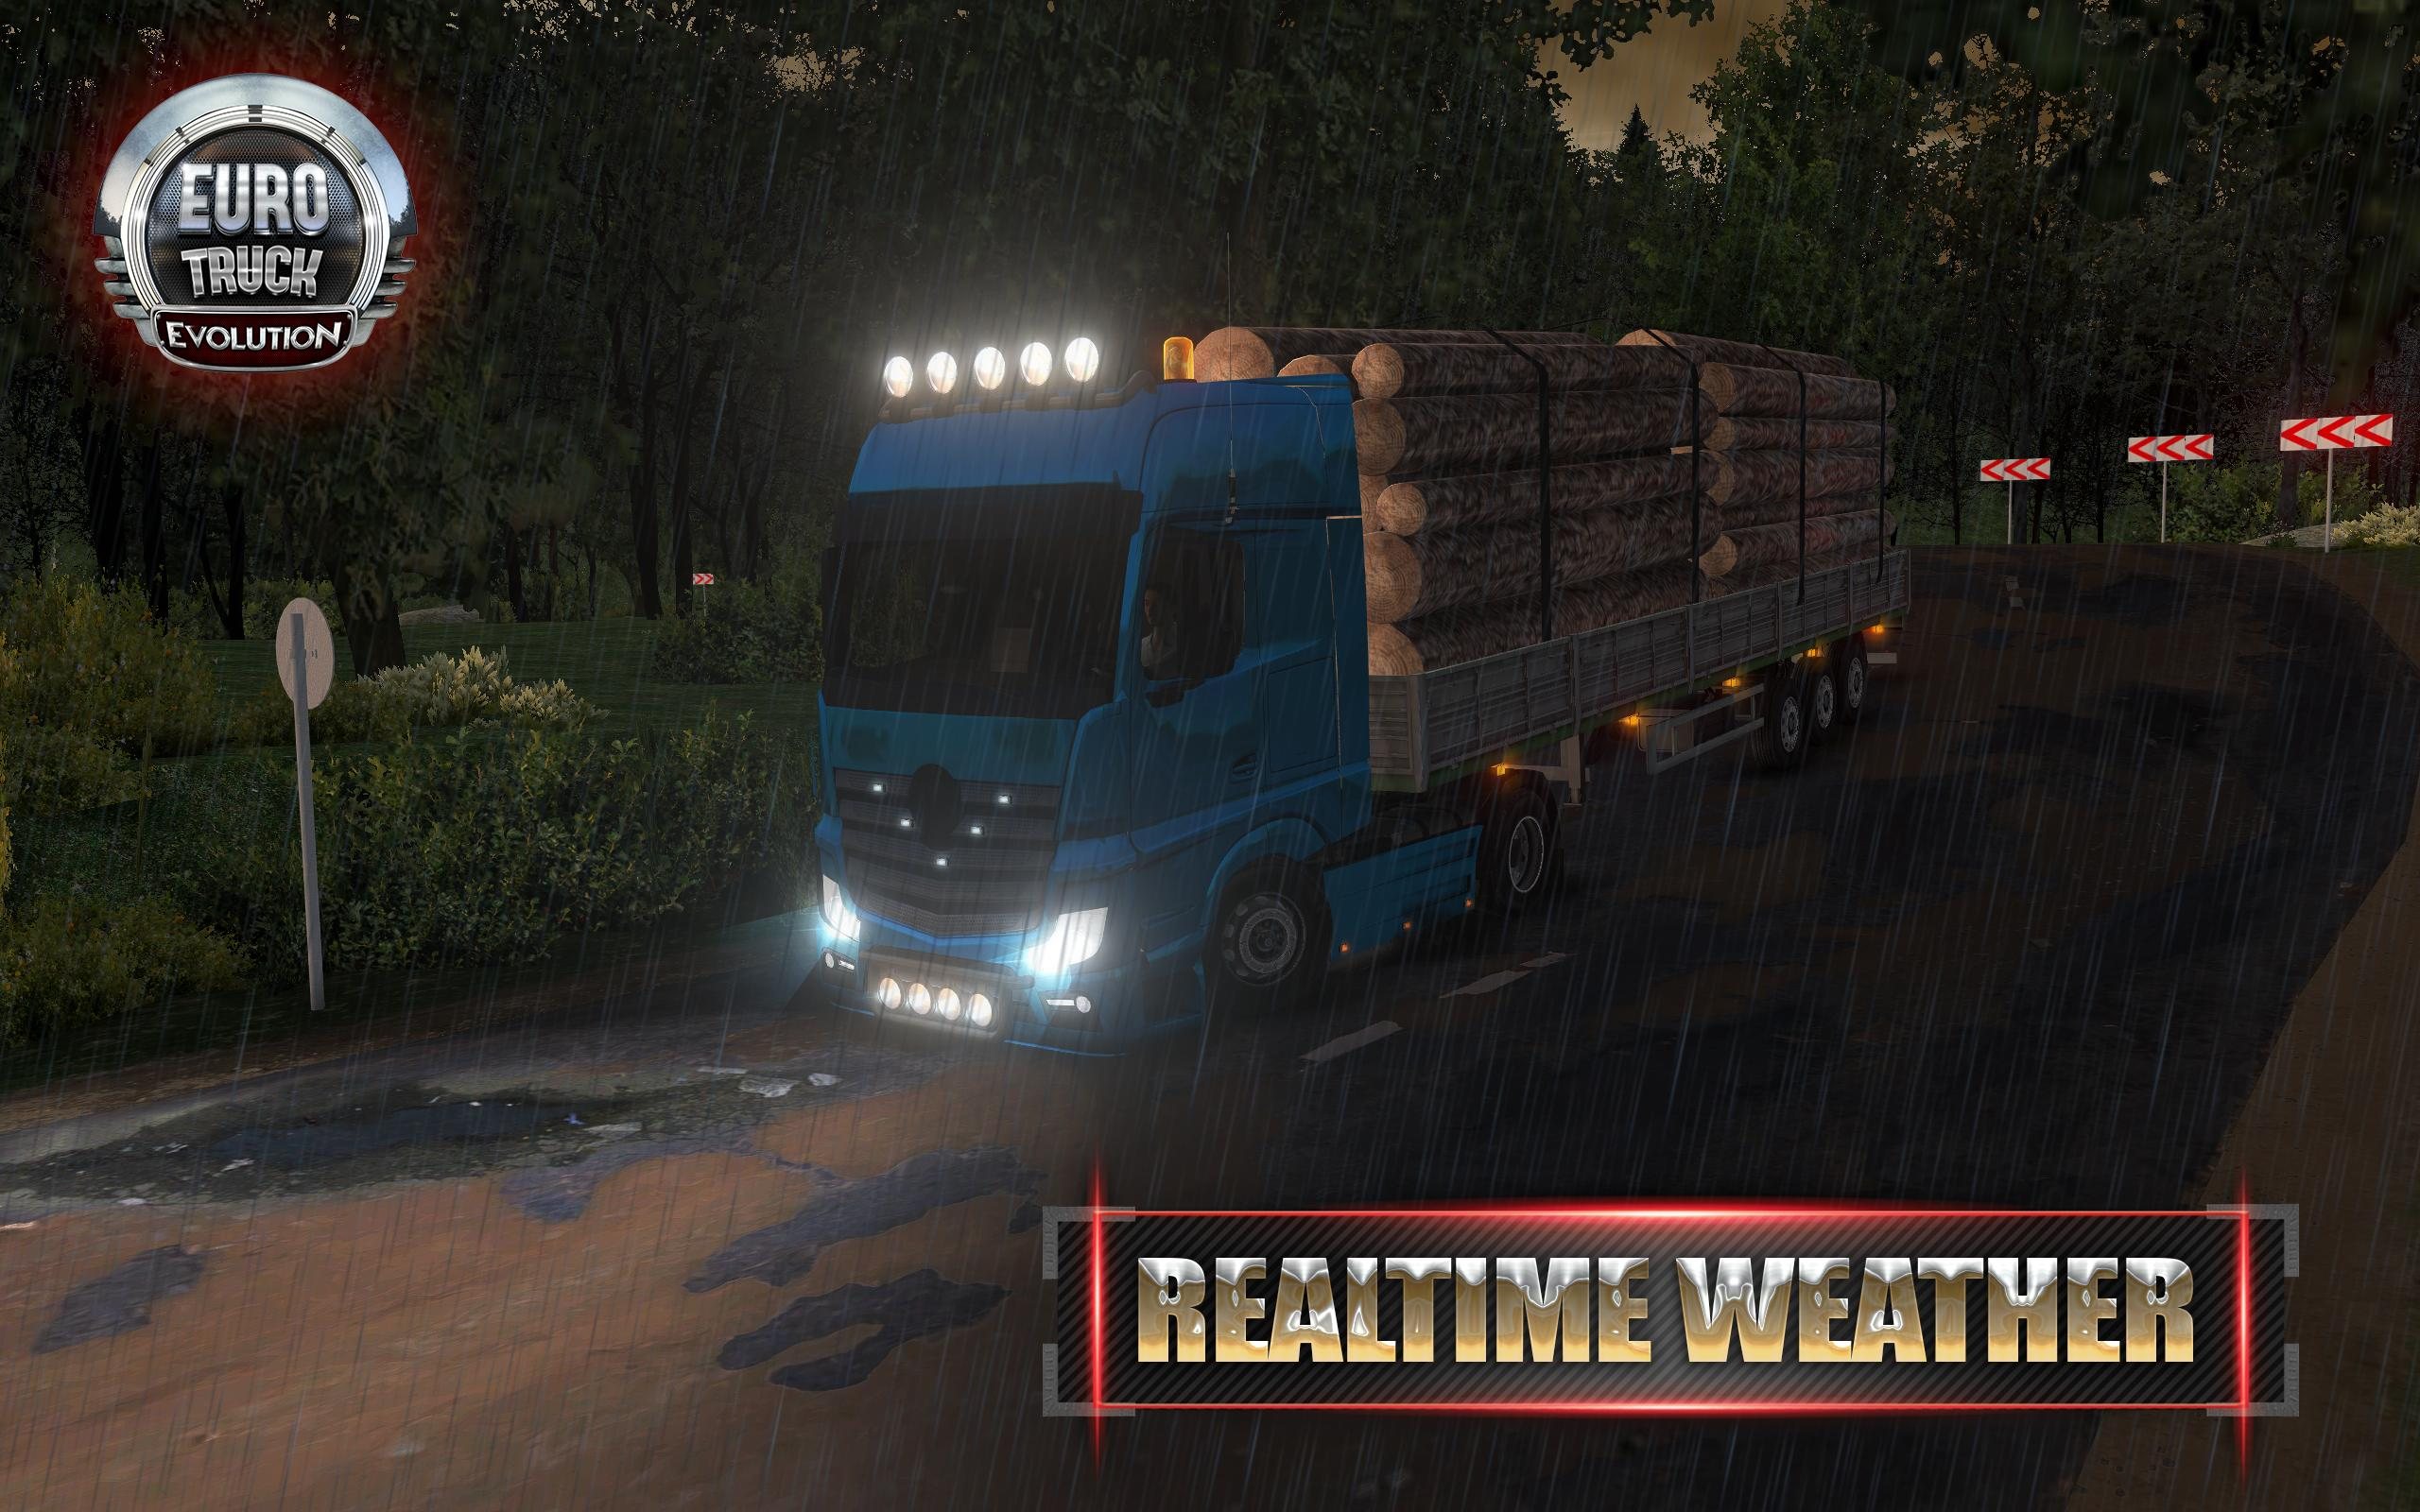 Euro Truck Evolution (Simulator) 3.1 Screenshot 5